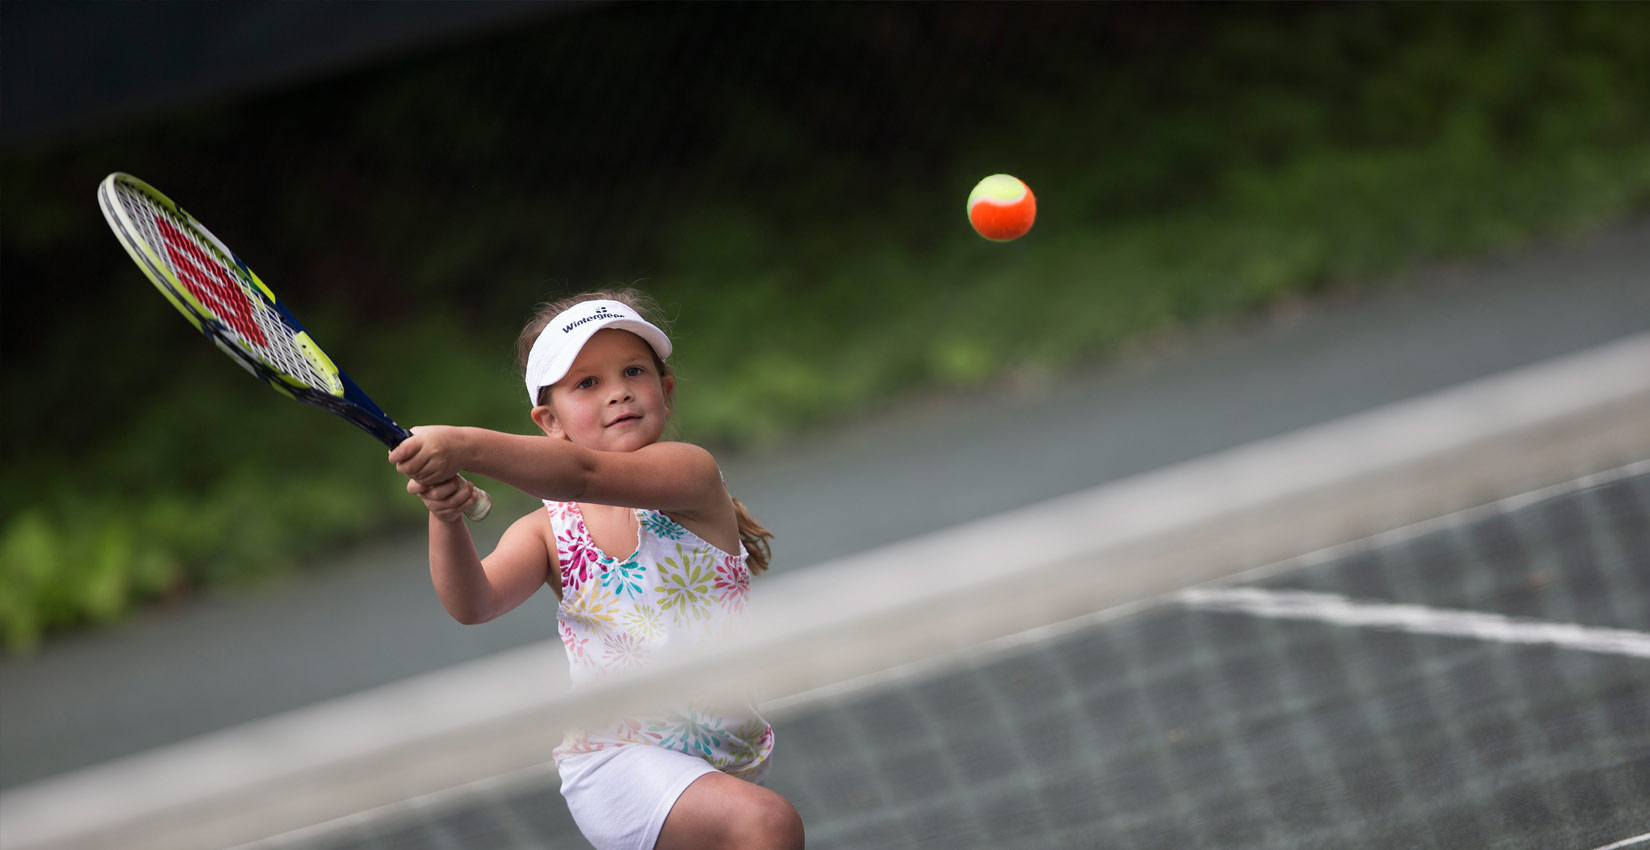 The resort     offers indoor and outdoor tennis courts with renowned coaching. Their  Adventure Center  is a huge hit with kids of all ages. Property owners have access to WPOA's    tennis court, horseshoes and playgrounds . The all-volunteer  Wintergreen Sporting Club  ($25 a year) is for property owners interested in archery ,  canoeing and kayaking, fishing and shooting.  Rodes Farm Stables  offers access to miles of riding trails. Simply want to hit the gym? Wintergreen Resort has gyms on the mountain and in the valley.